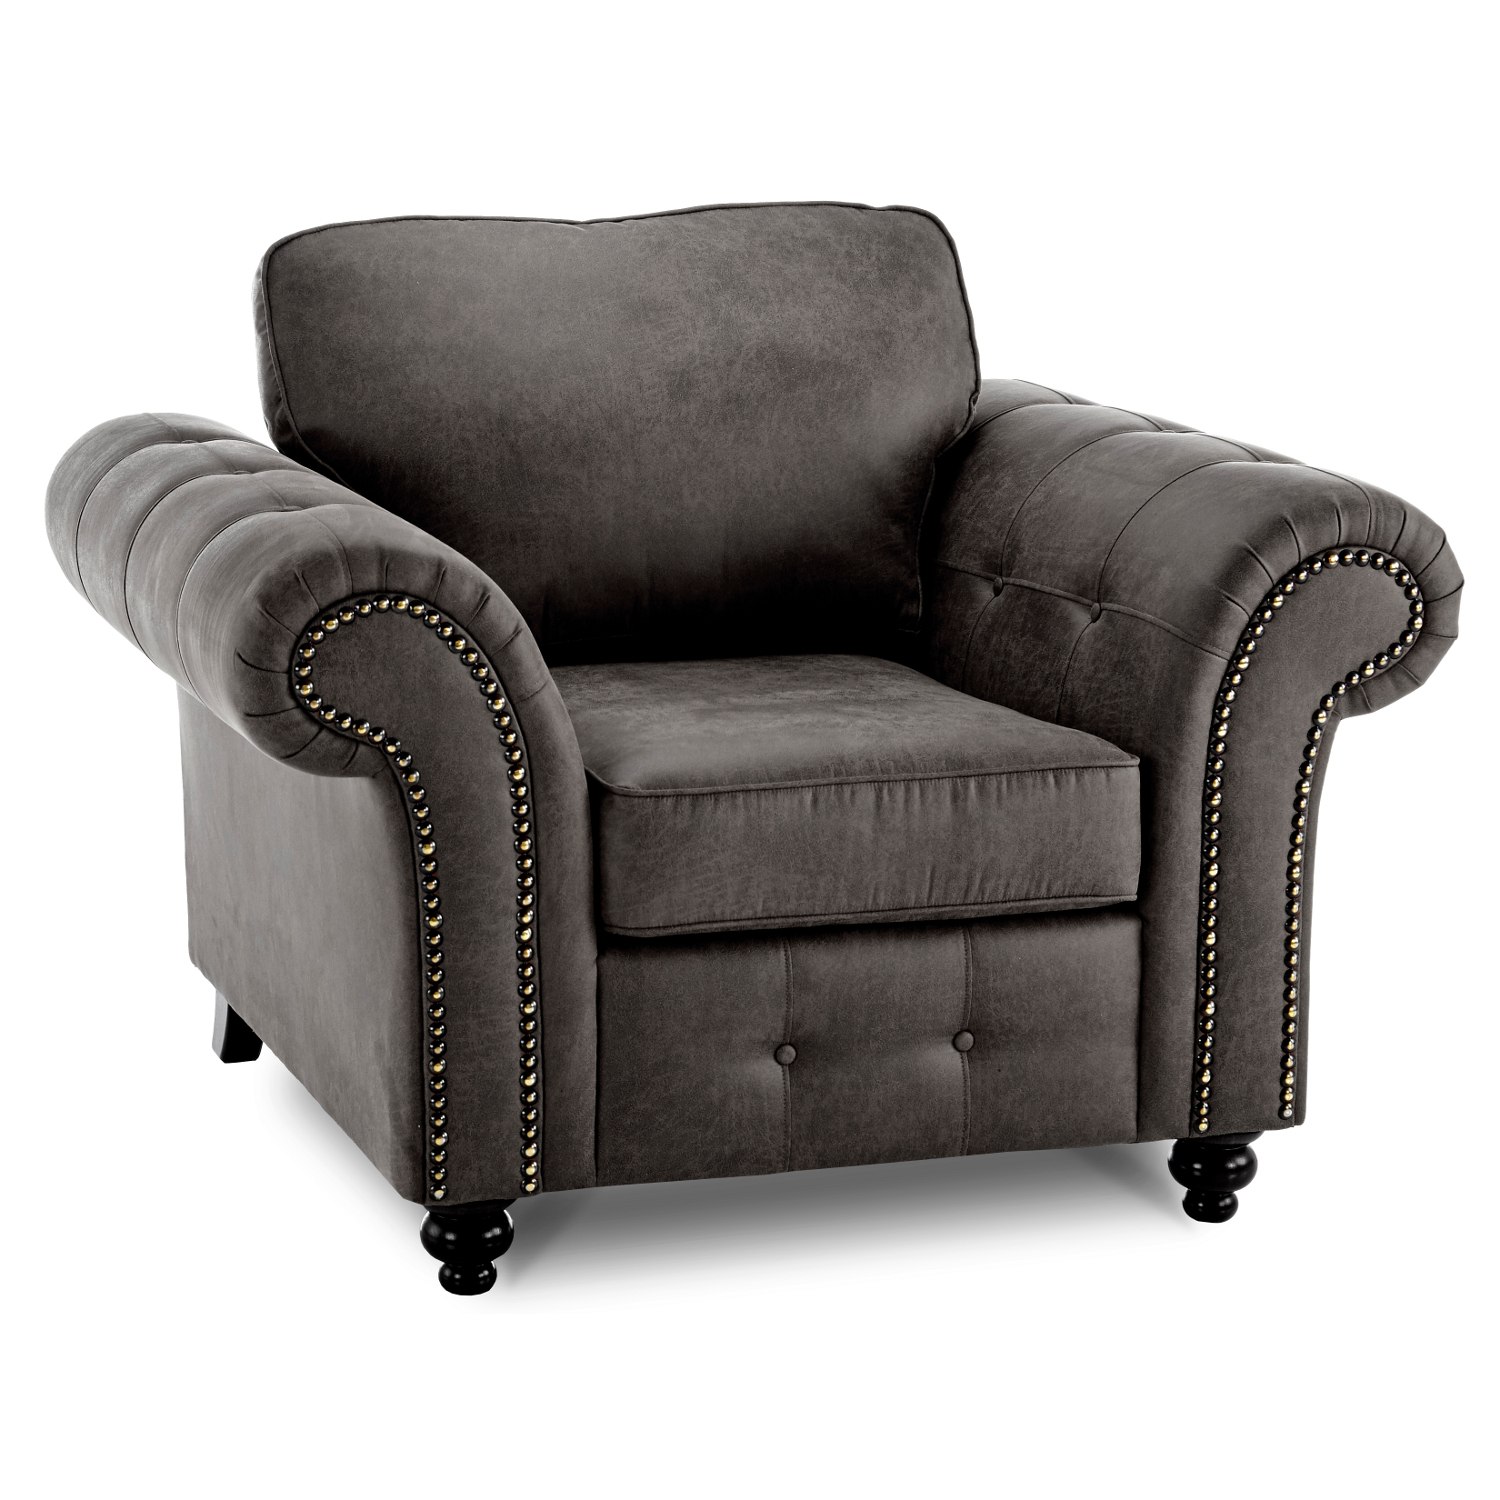 Oakland Faux Leather Armchair in Black